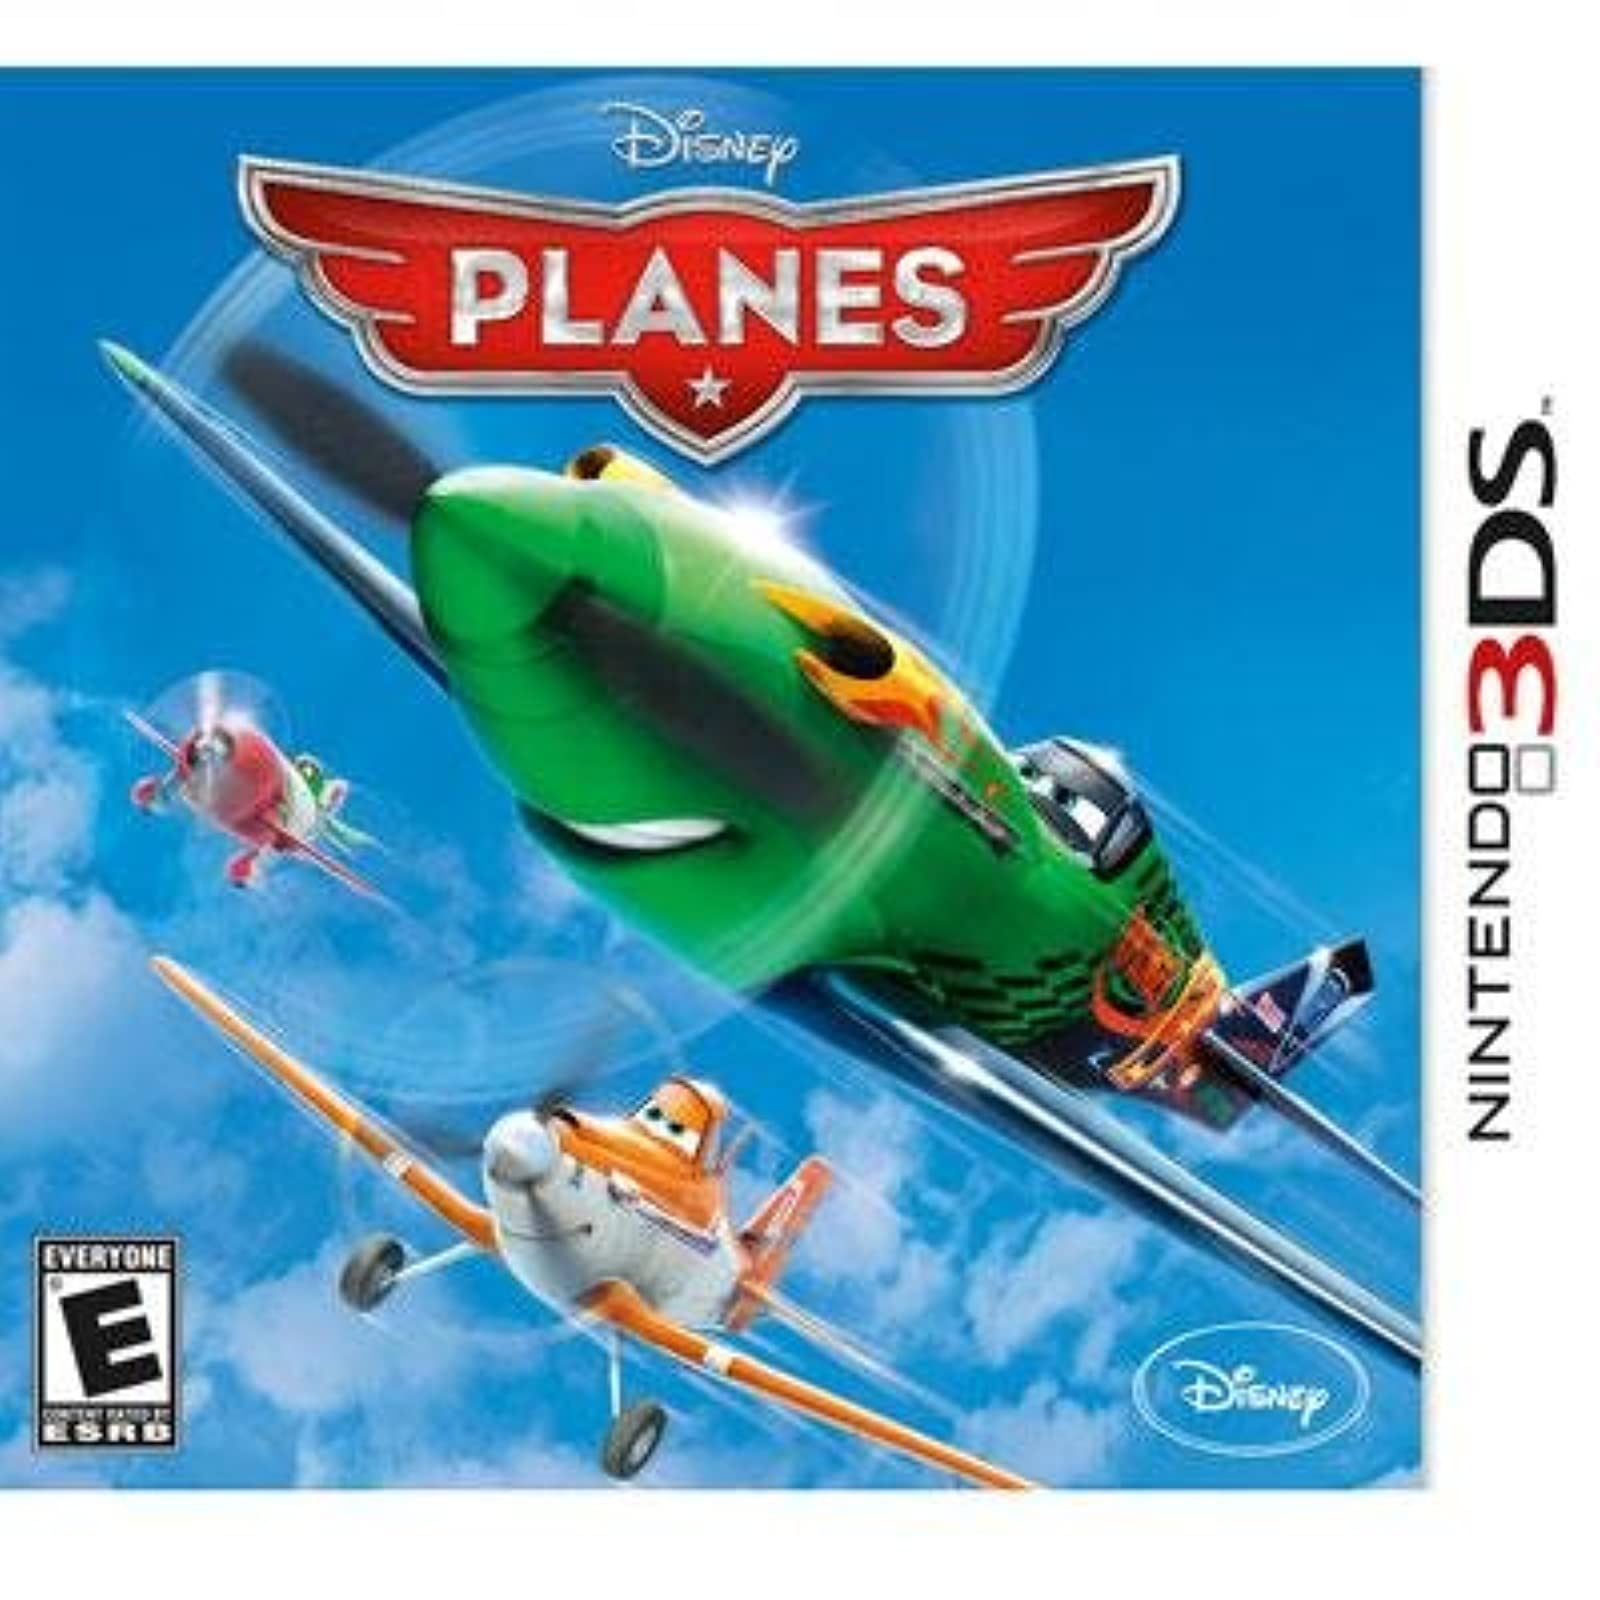 Planes Game For 3DS